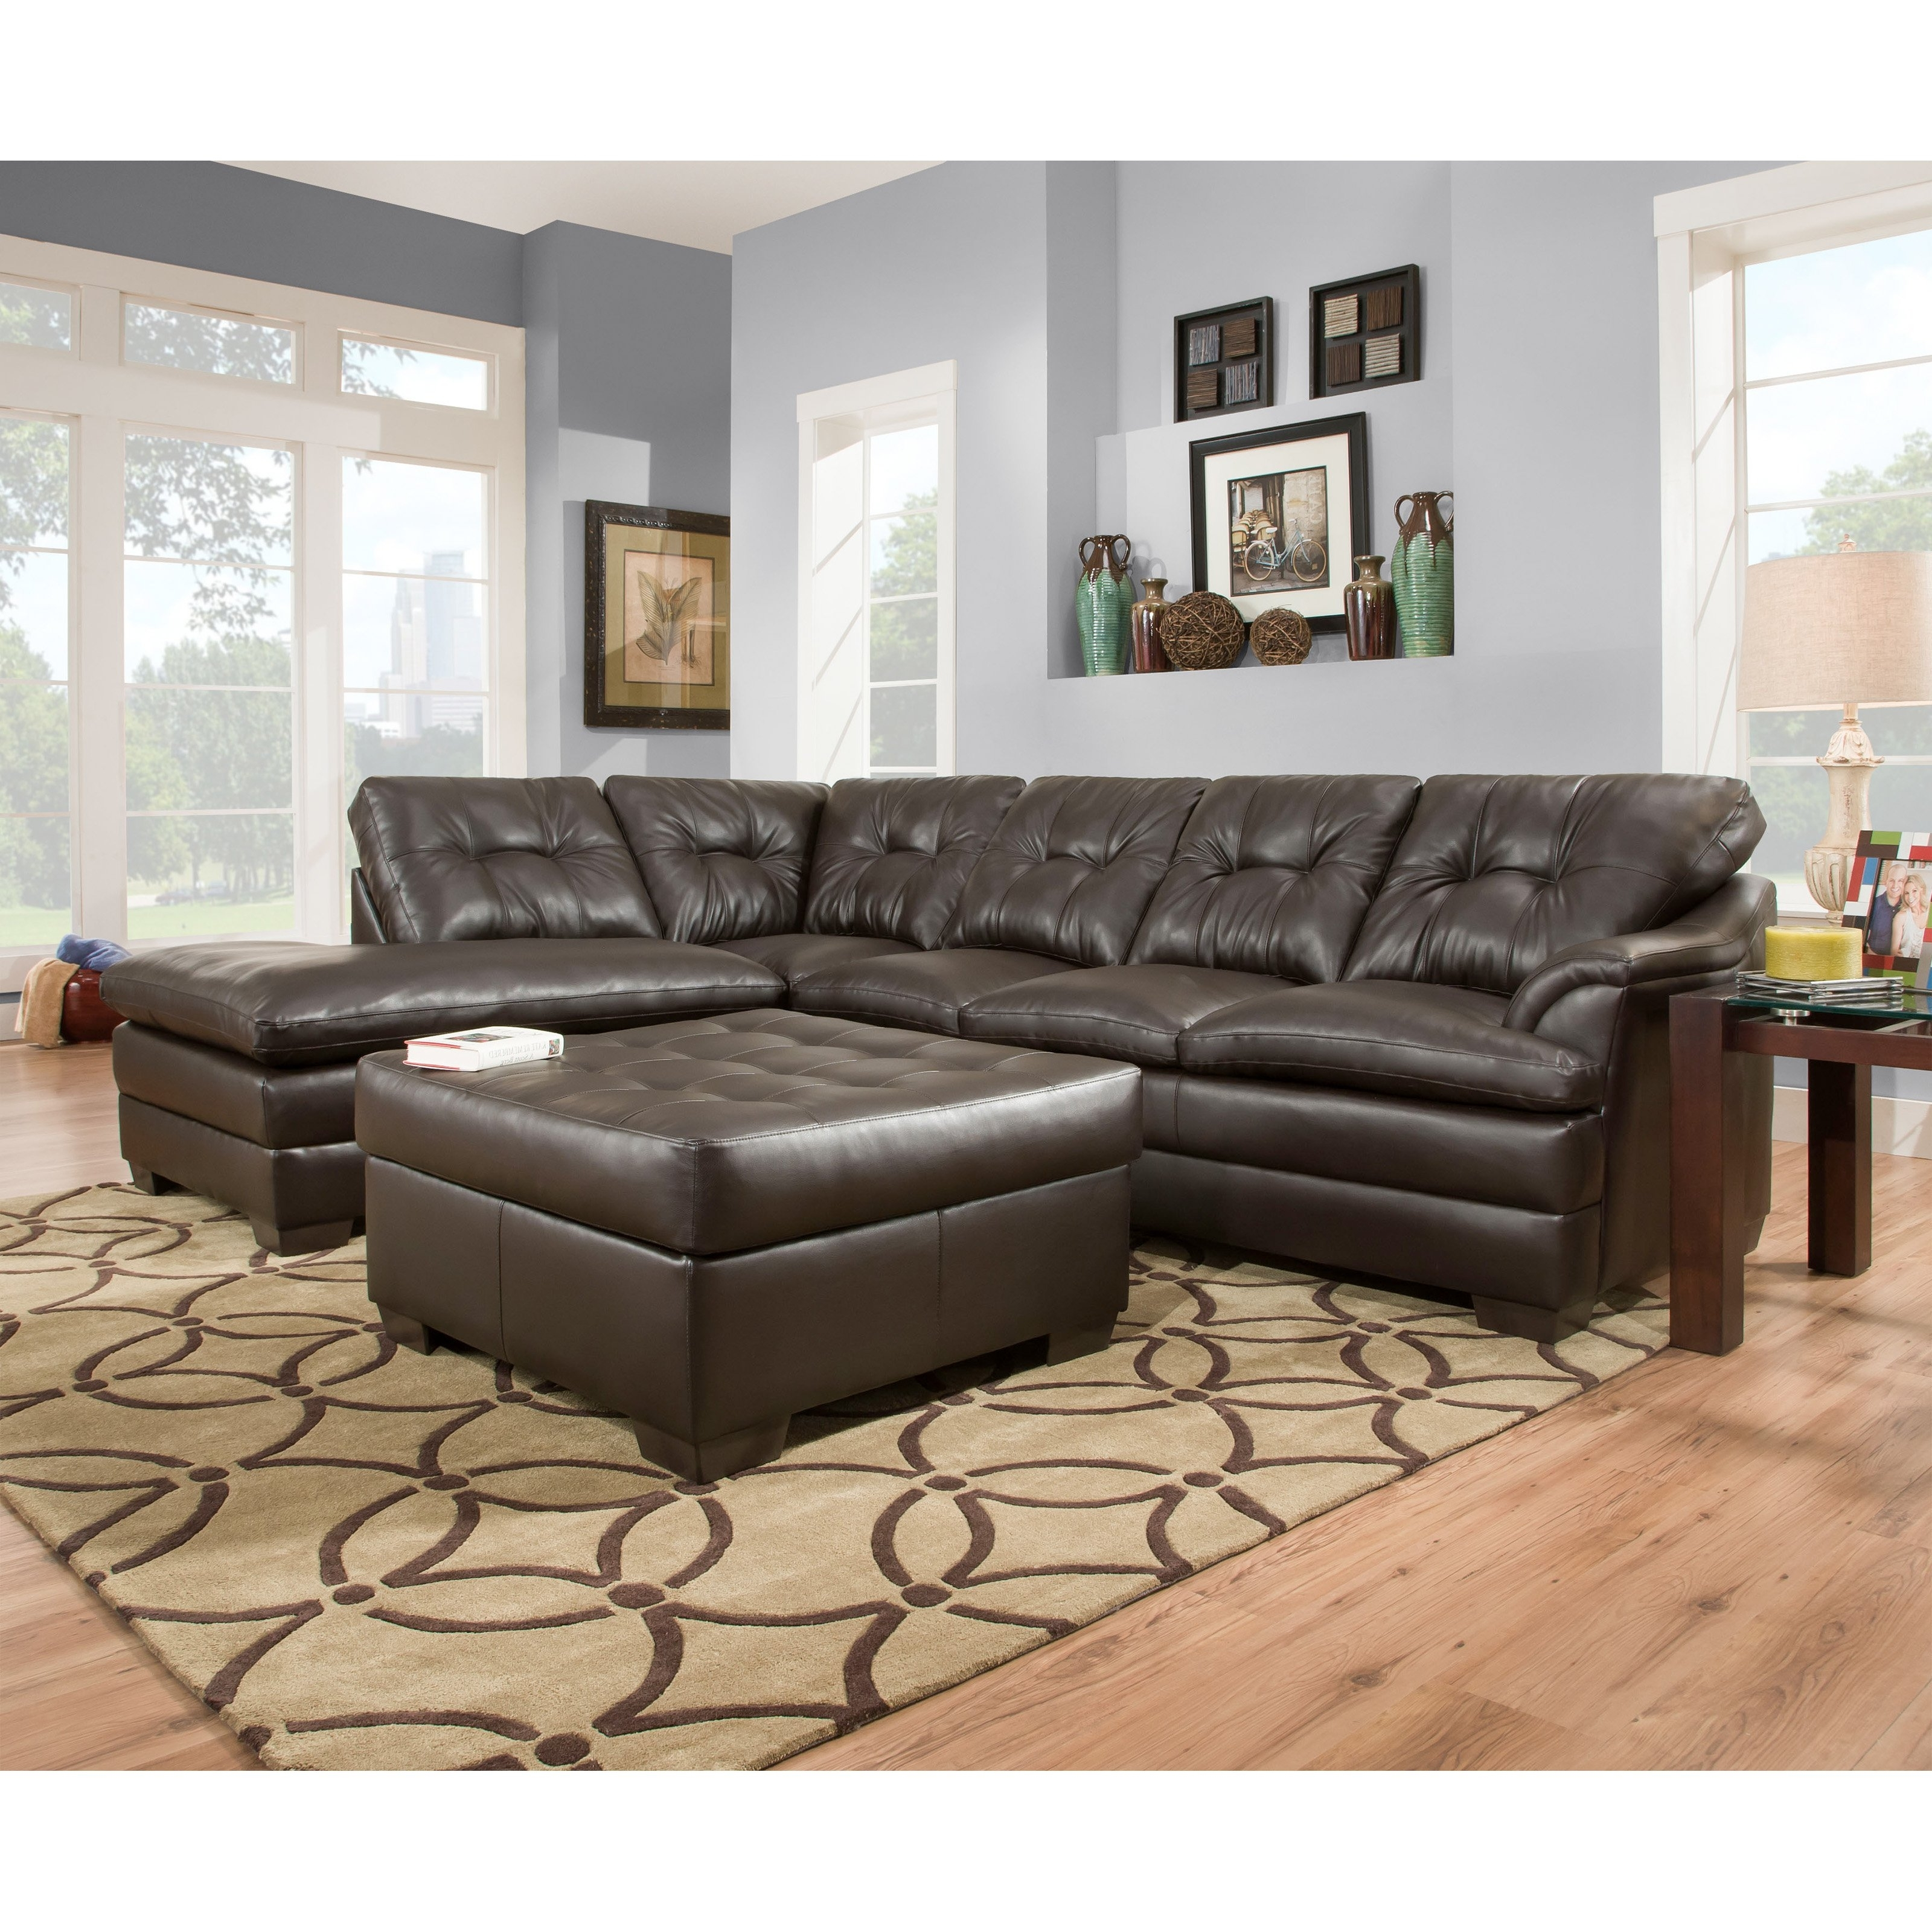 Well Liked Simmons Sectional Sofas In Simmons Upholstery Apollo Sectional With Optional Ottoman (View 15 of 15)